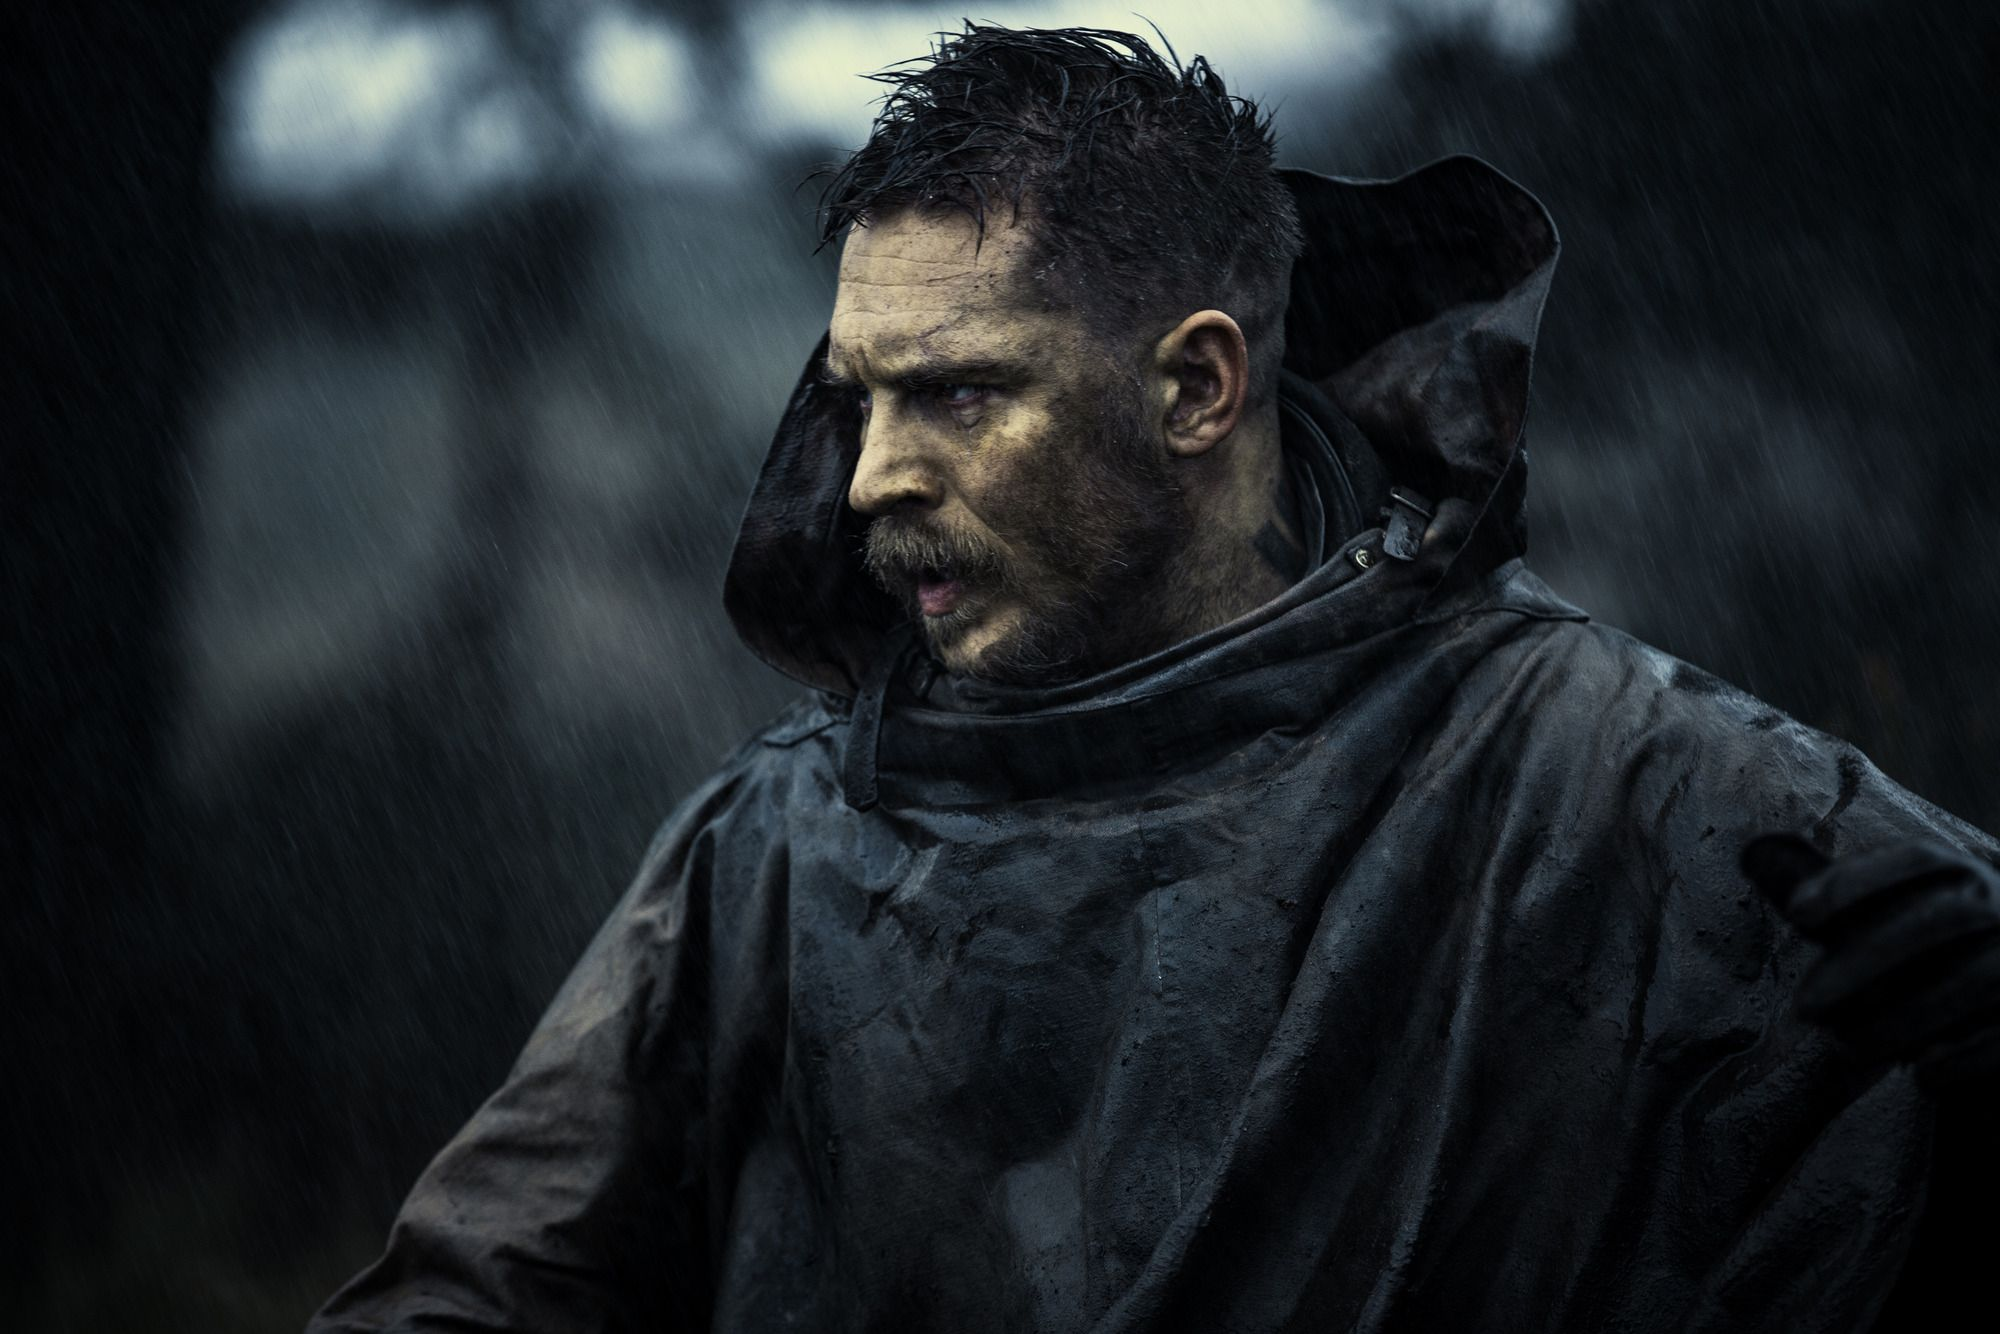 Here's why Taboo season 2 starring Tom Hardy is taking so long